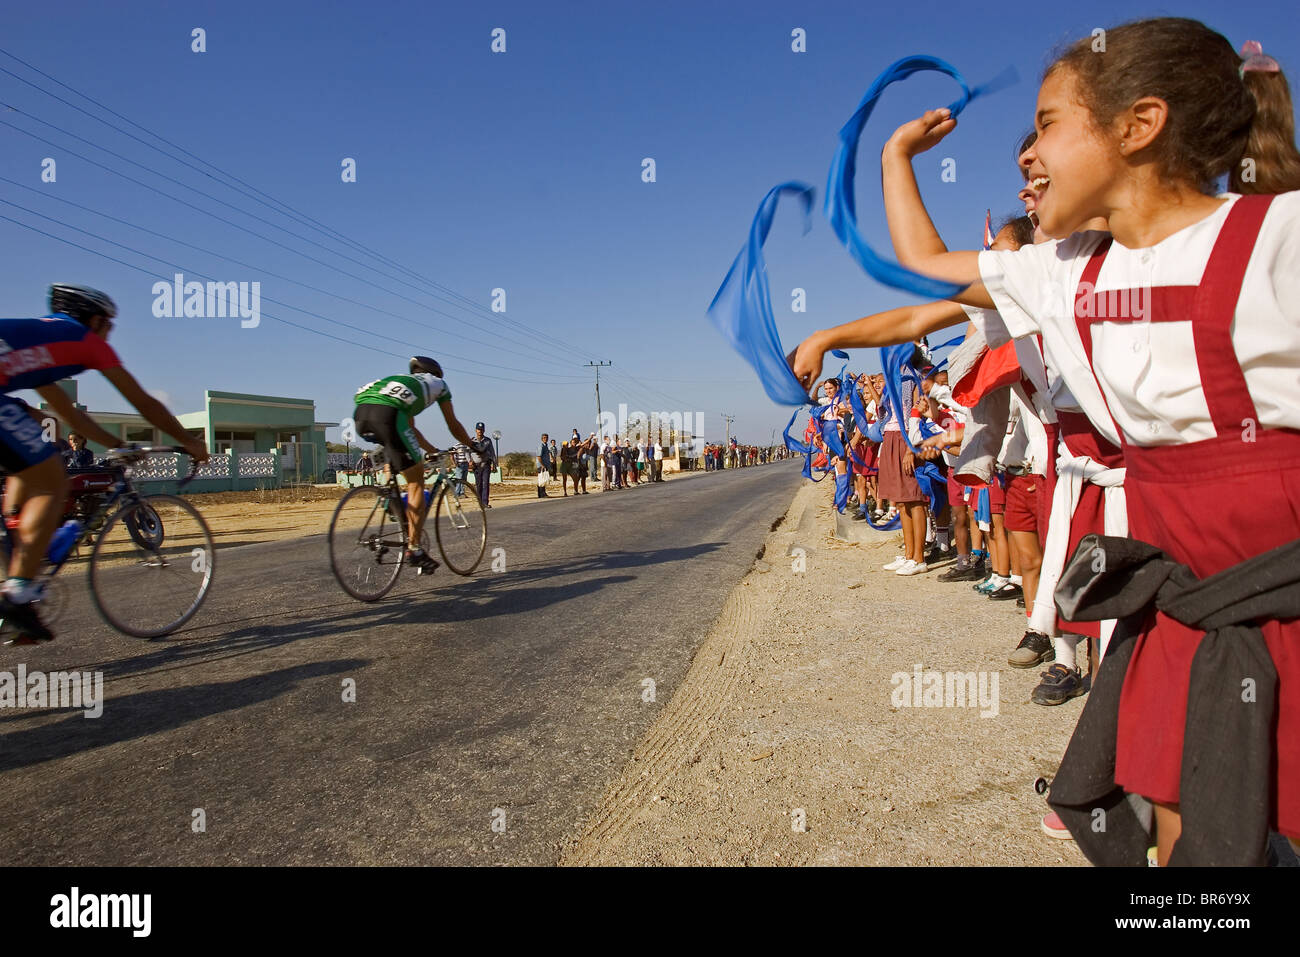 Children wave handkerchiefs at cyclers as they go past in the street in Cuba. - Stock Image